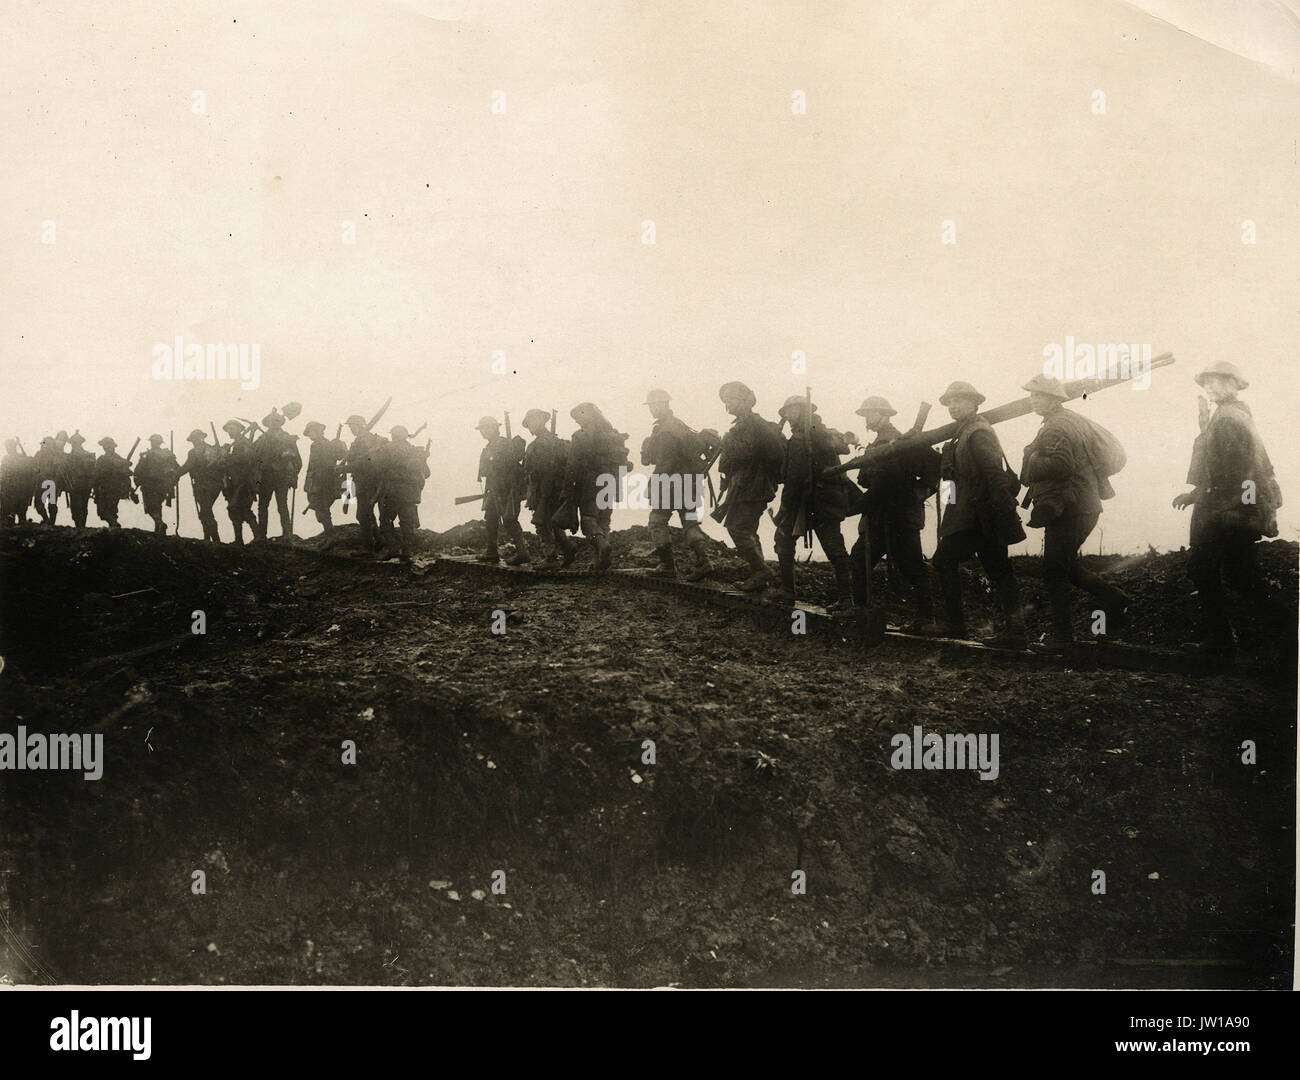 Where spades and picks are useful as rifles - Alternative Title: Official Photograph of the Somme Advance  Description: Working parties go up to consolidate newly captured trenches - Stock Image